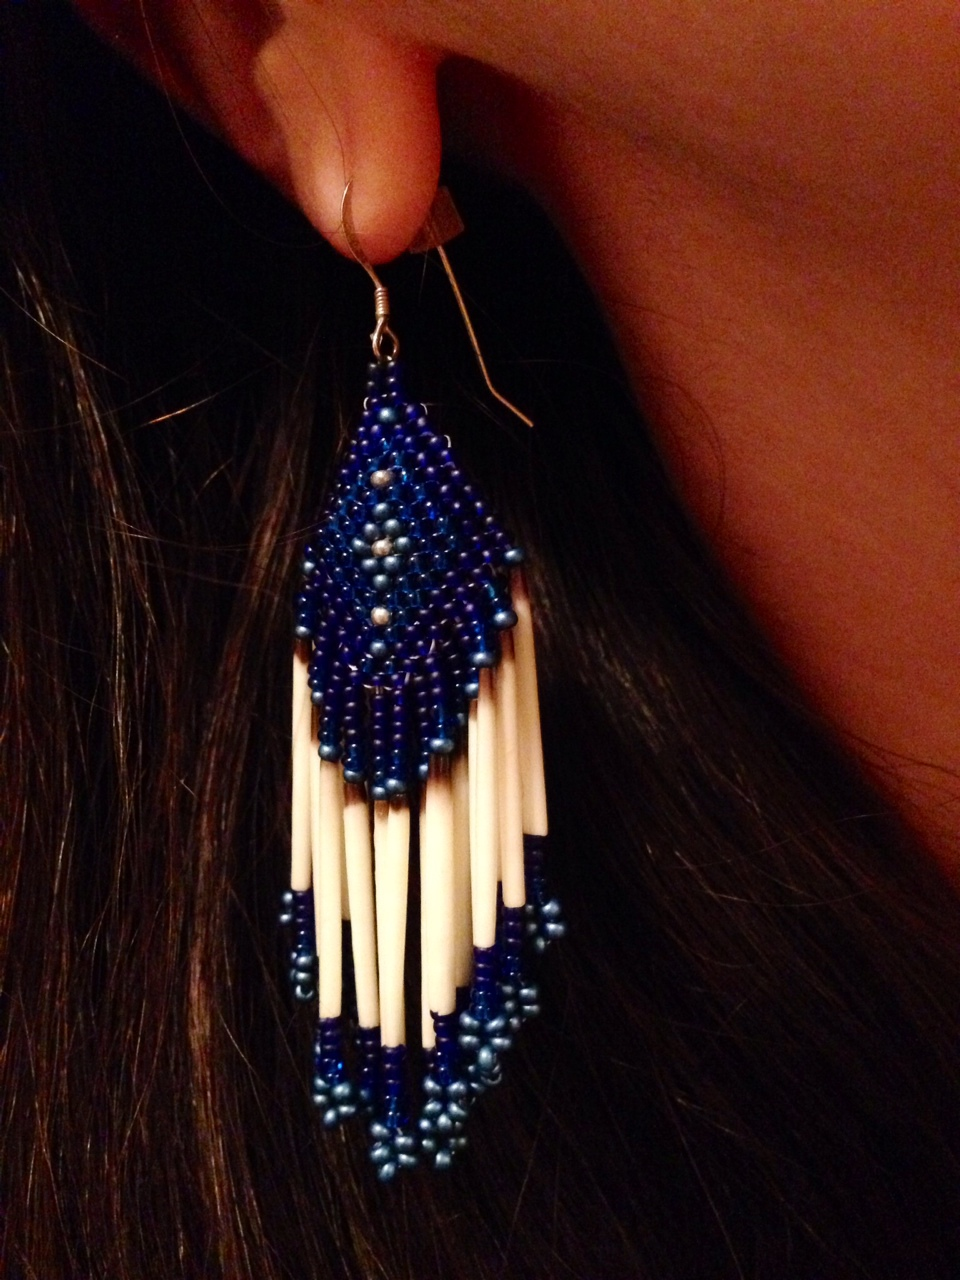 Beaded porcupine quill earrings made by my good friend, the very talented artist Keeley Kaveolook.  Check out  ByKeeley Jewelry  on Etsy.